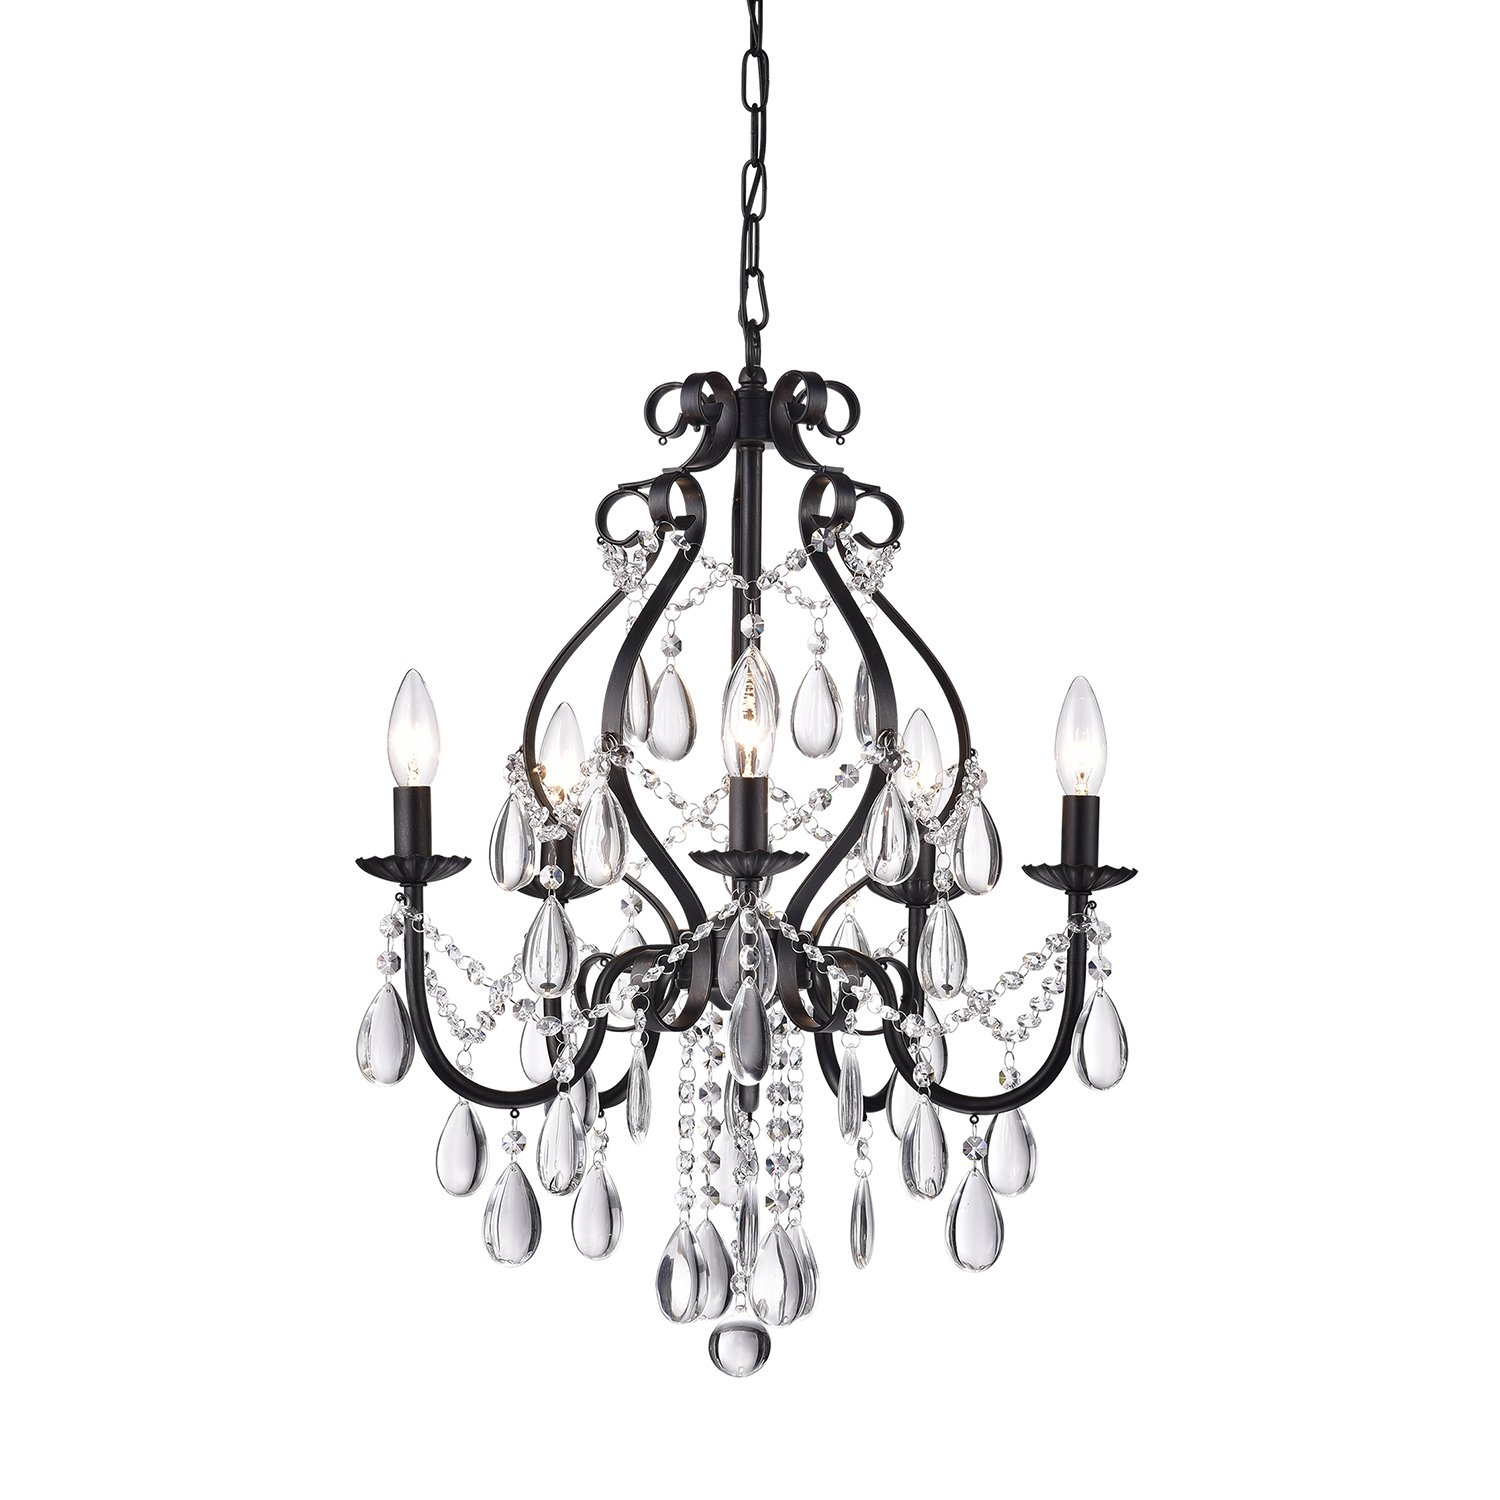 Edvivi 5 light amorette antique black crystal chandelier ceiling fixture glam lighting